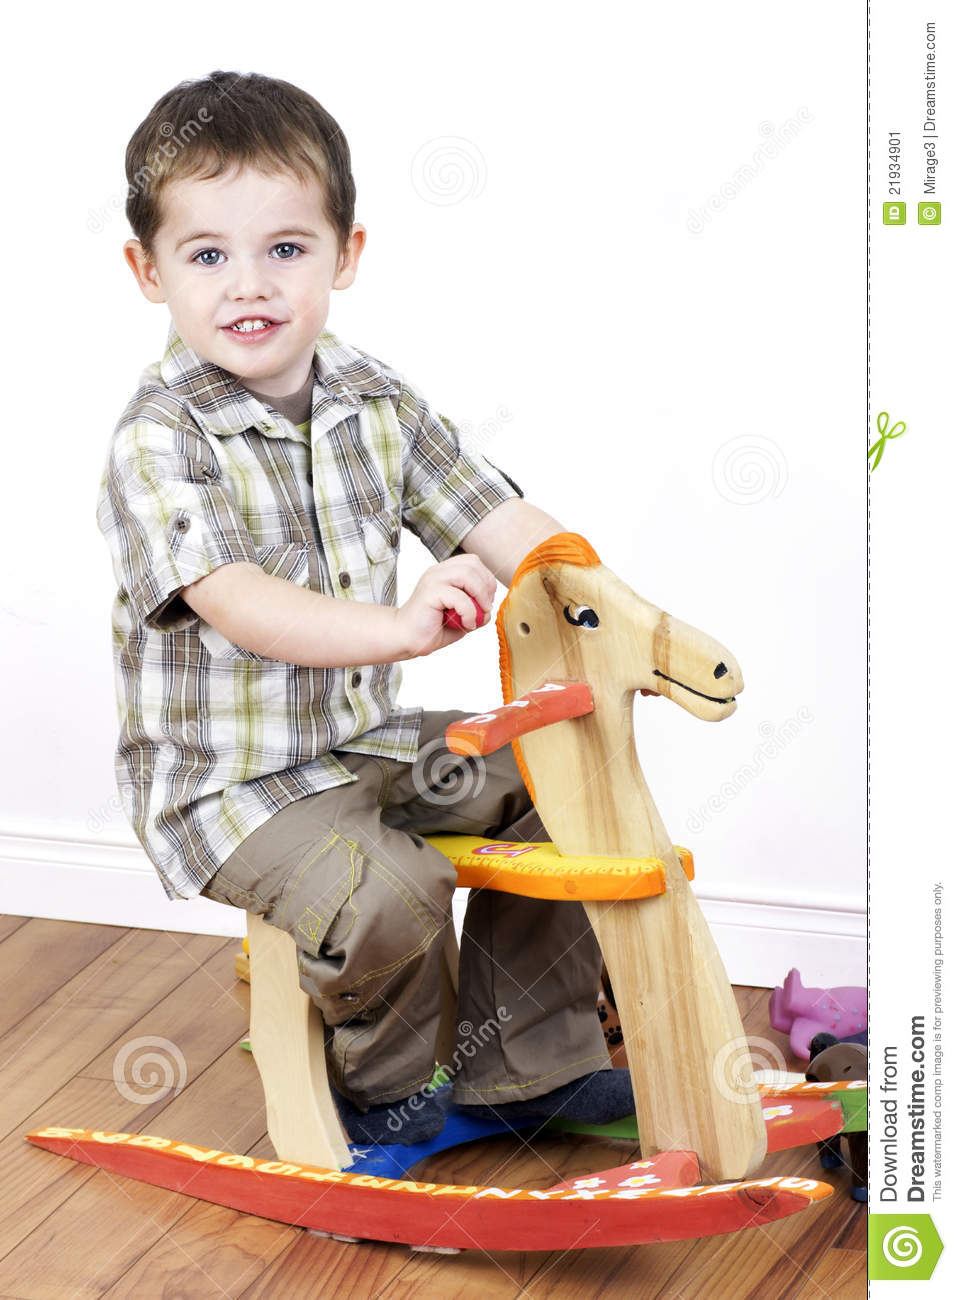 ... riding a handcarfted wooden rocking horse chair, vertical studio shot